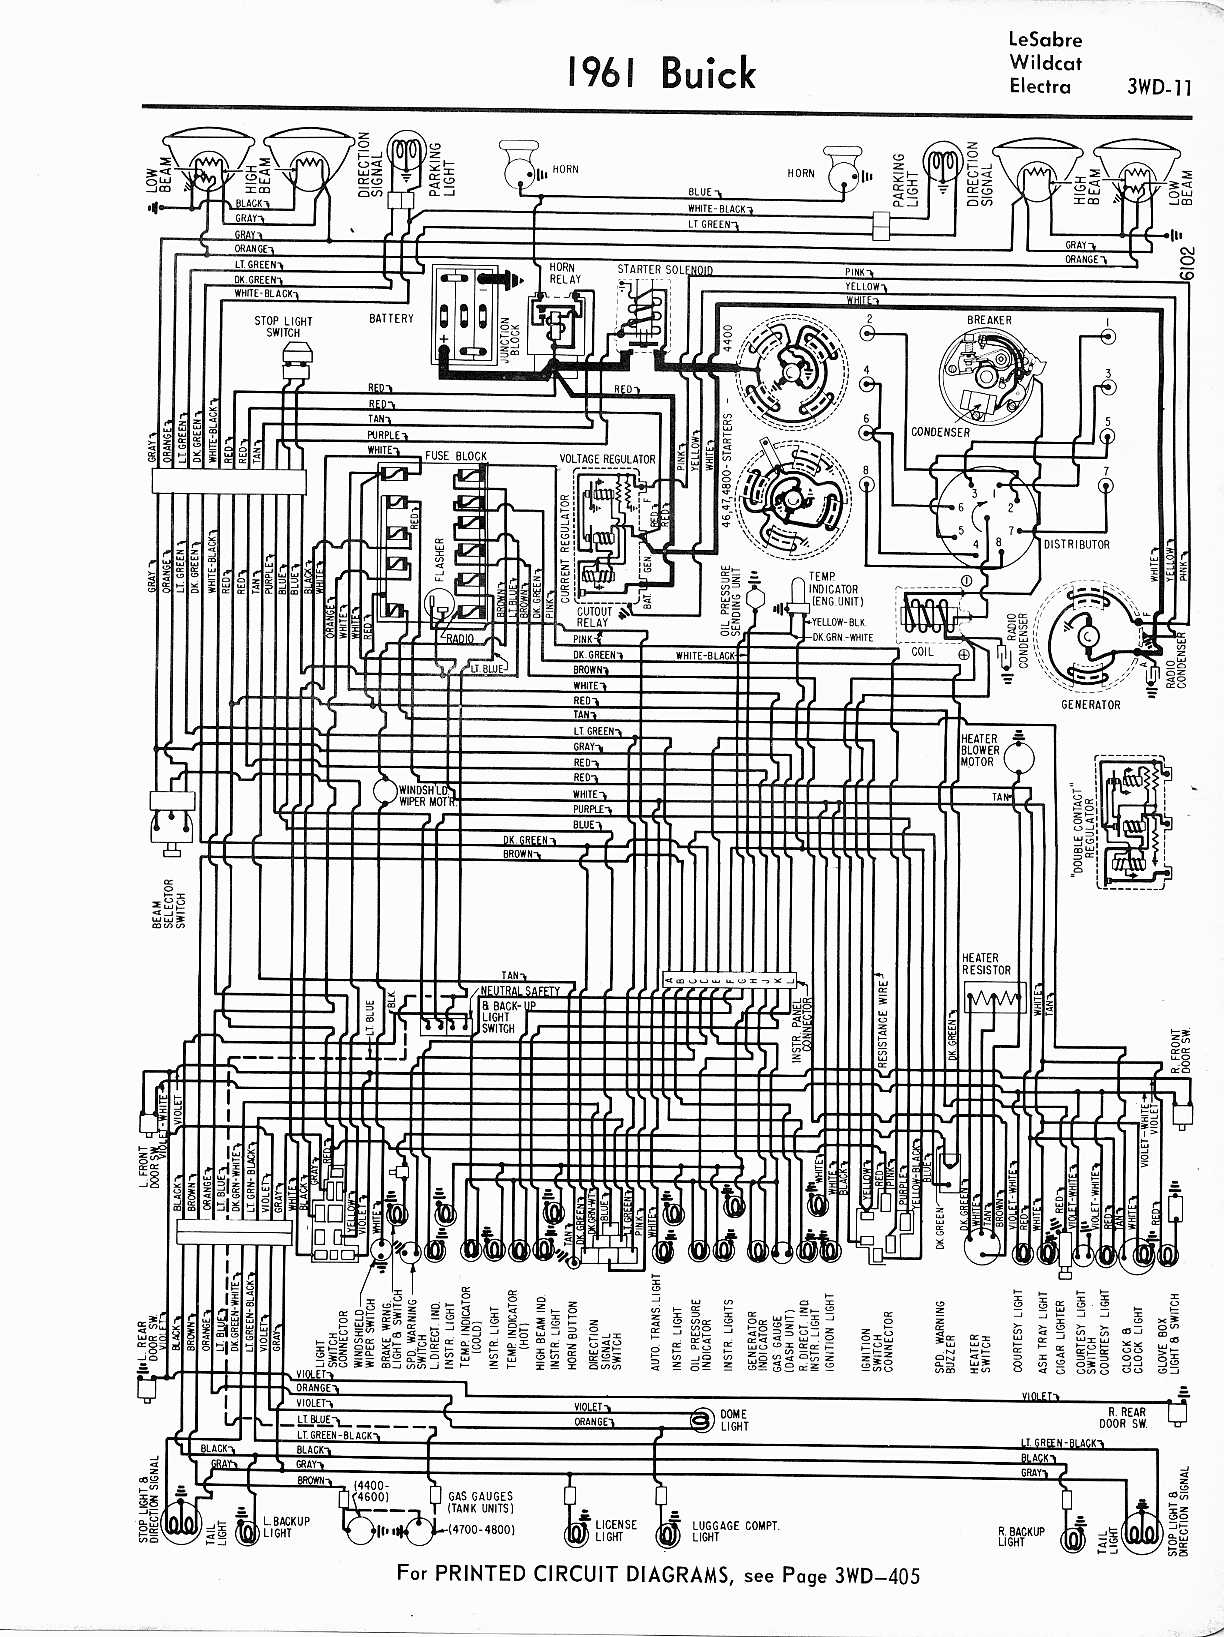 wiring diagram wildkat detailed schematics diagram rh lelandlutheran com  wildcat 1000 wiring diagram 1966 buick wildcat wiring diagram